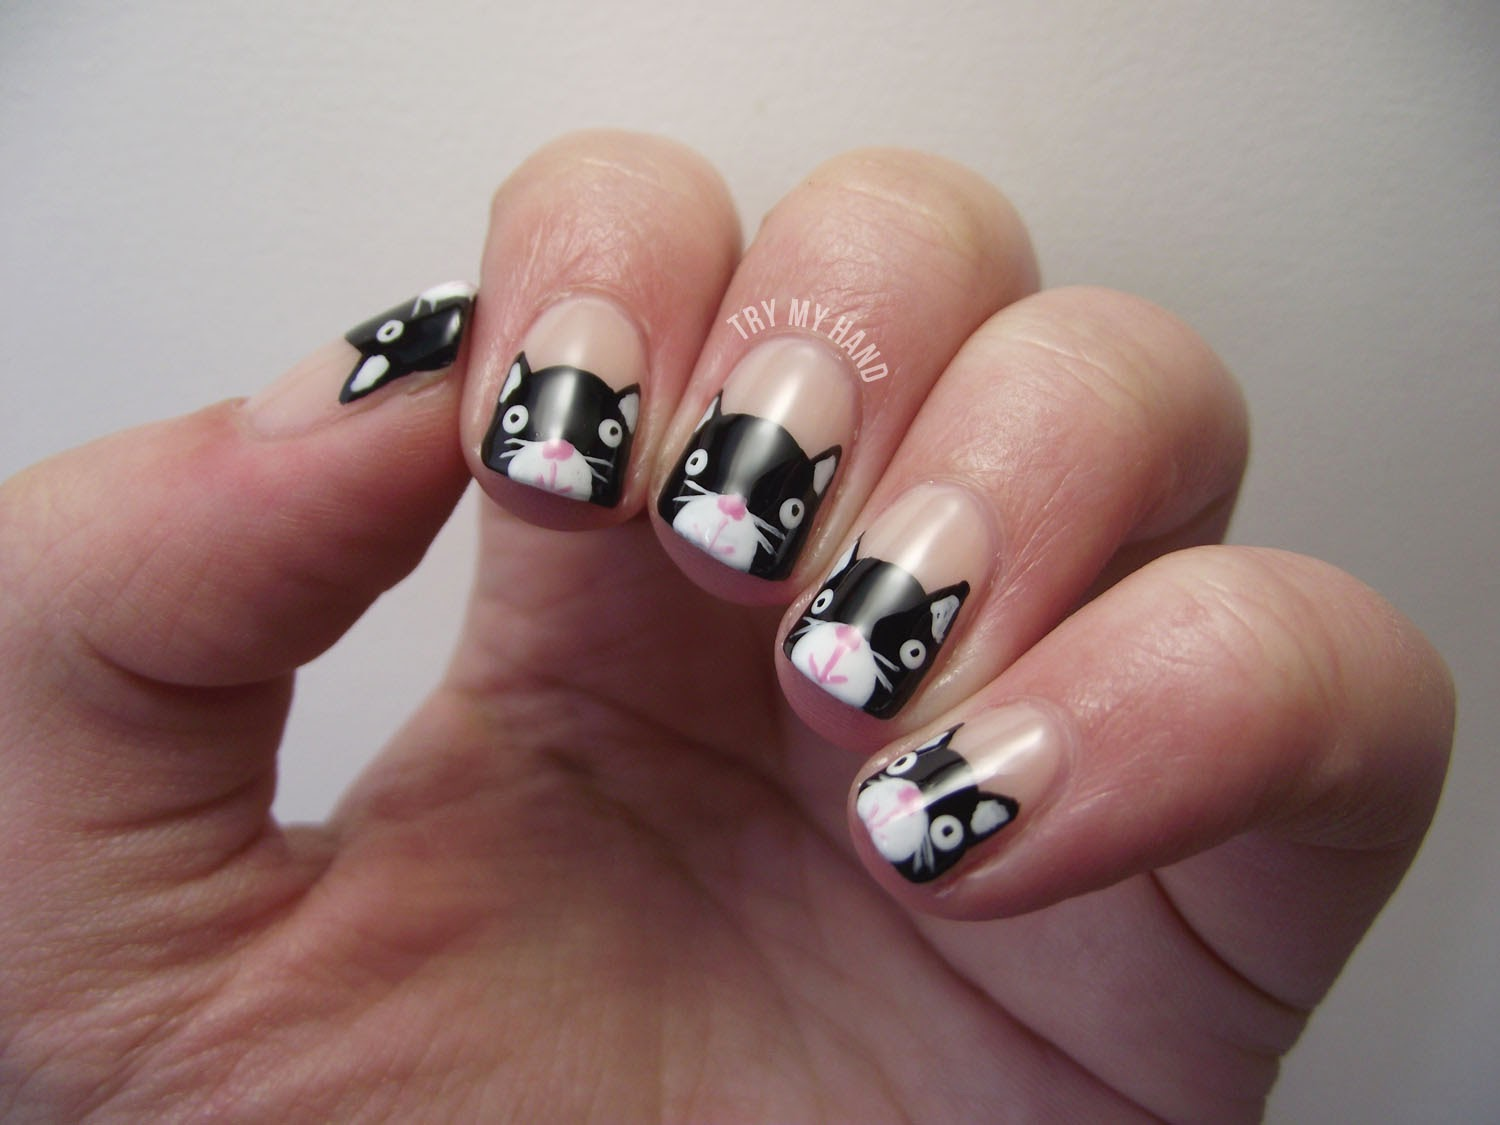 I Ve Got Another Tutorial Today For You All A Design Which Was Really Por During The Alphabet Nail Art Challenge It S K Kitties